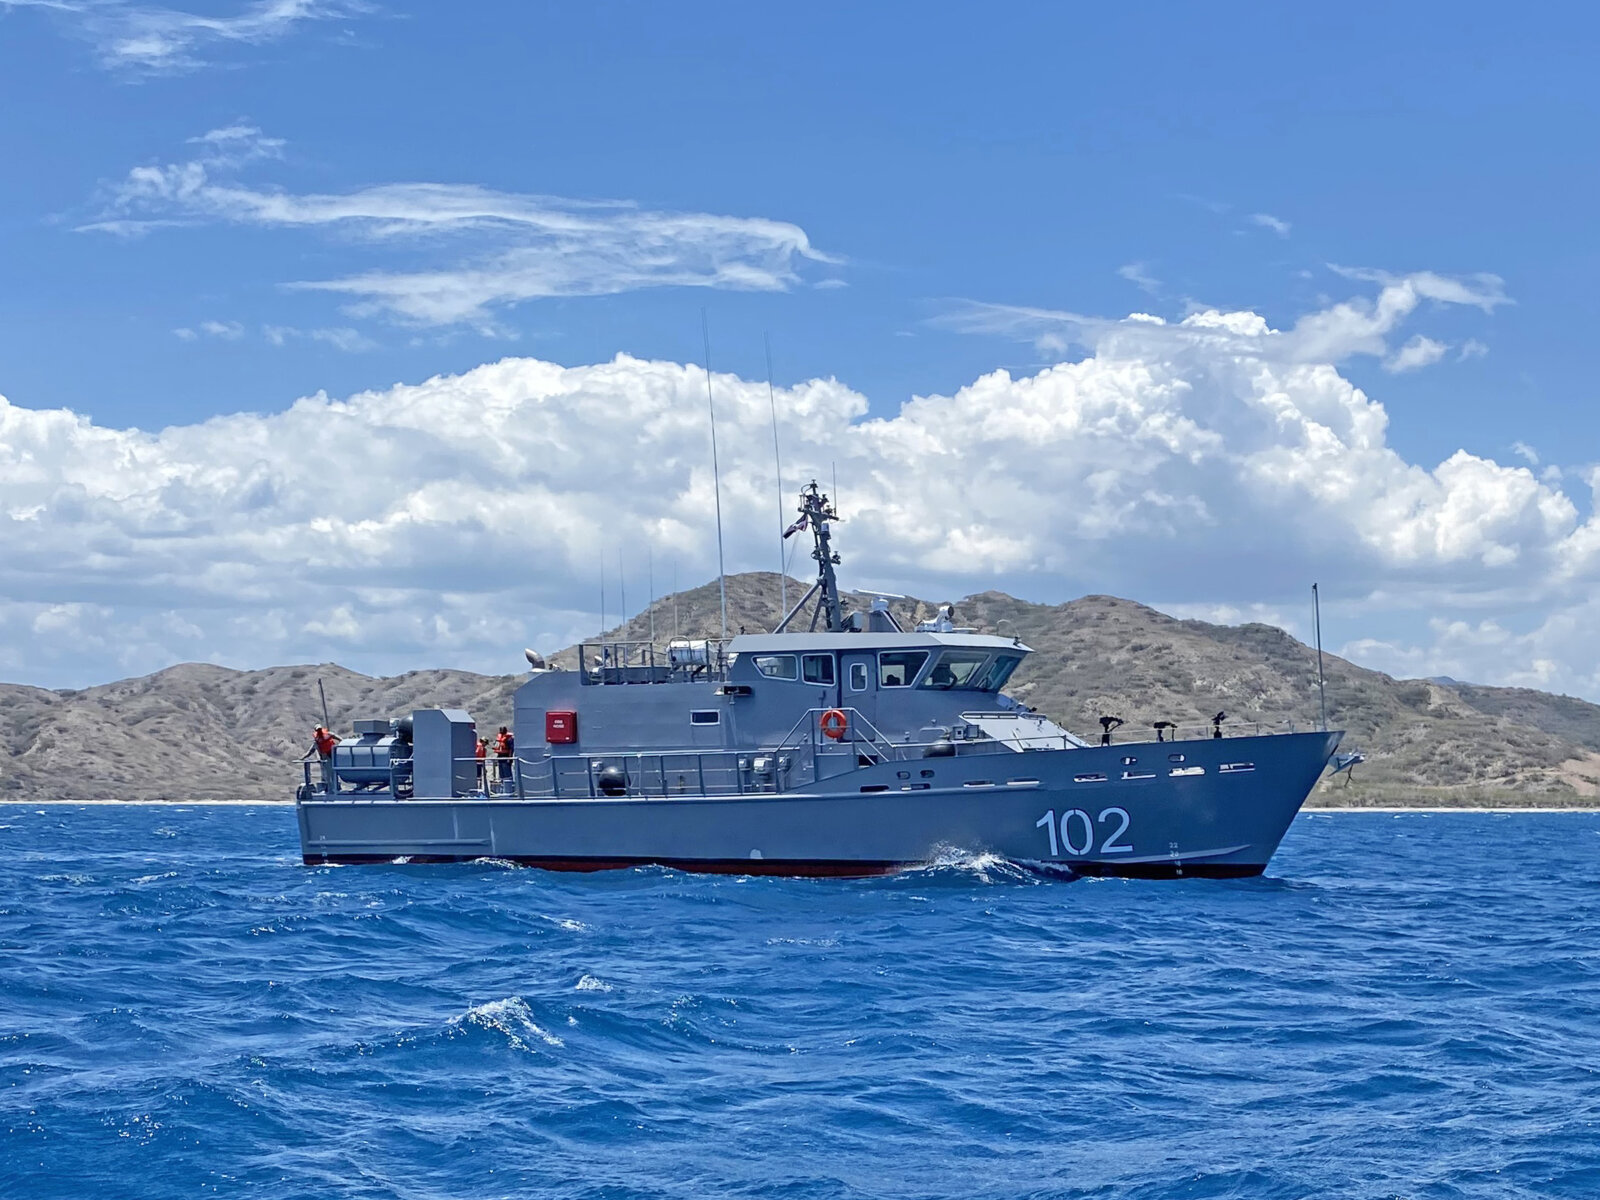 Shipbuilder Metal Shark has delivered an 85' x 19.5' welded aluminum Near Coastal Patrol Vessel (NCPV) to the Dominican Republic's Navy.